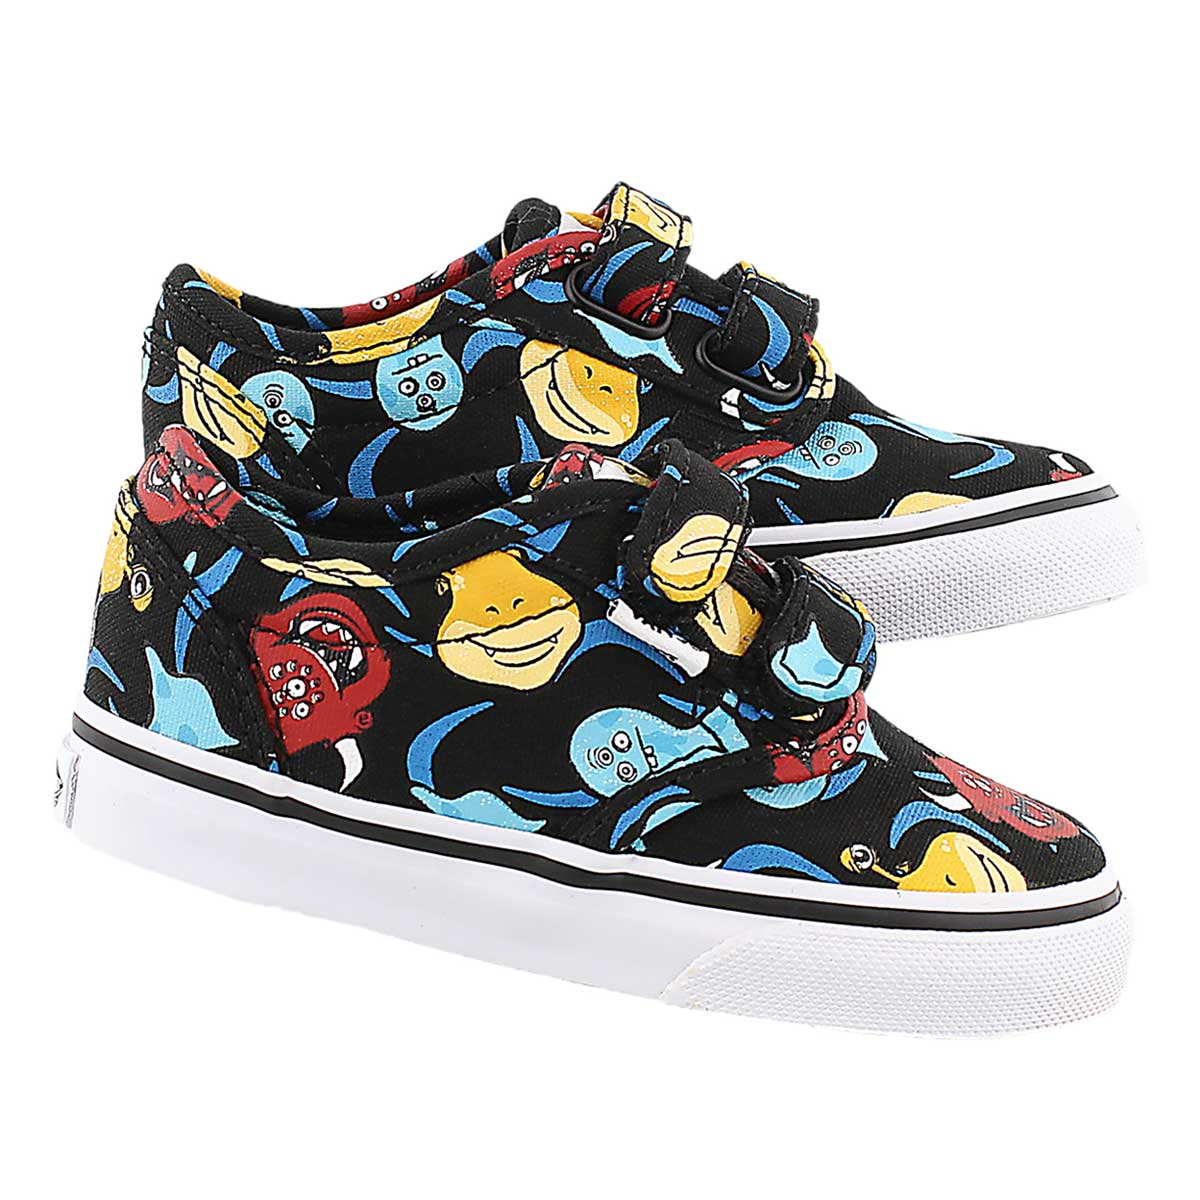 Infs Atwood monster print canvas sneaker